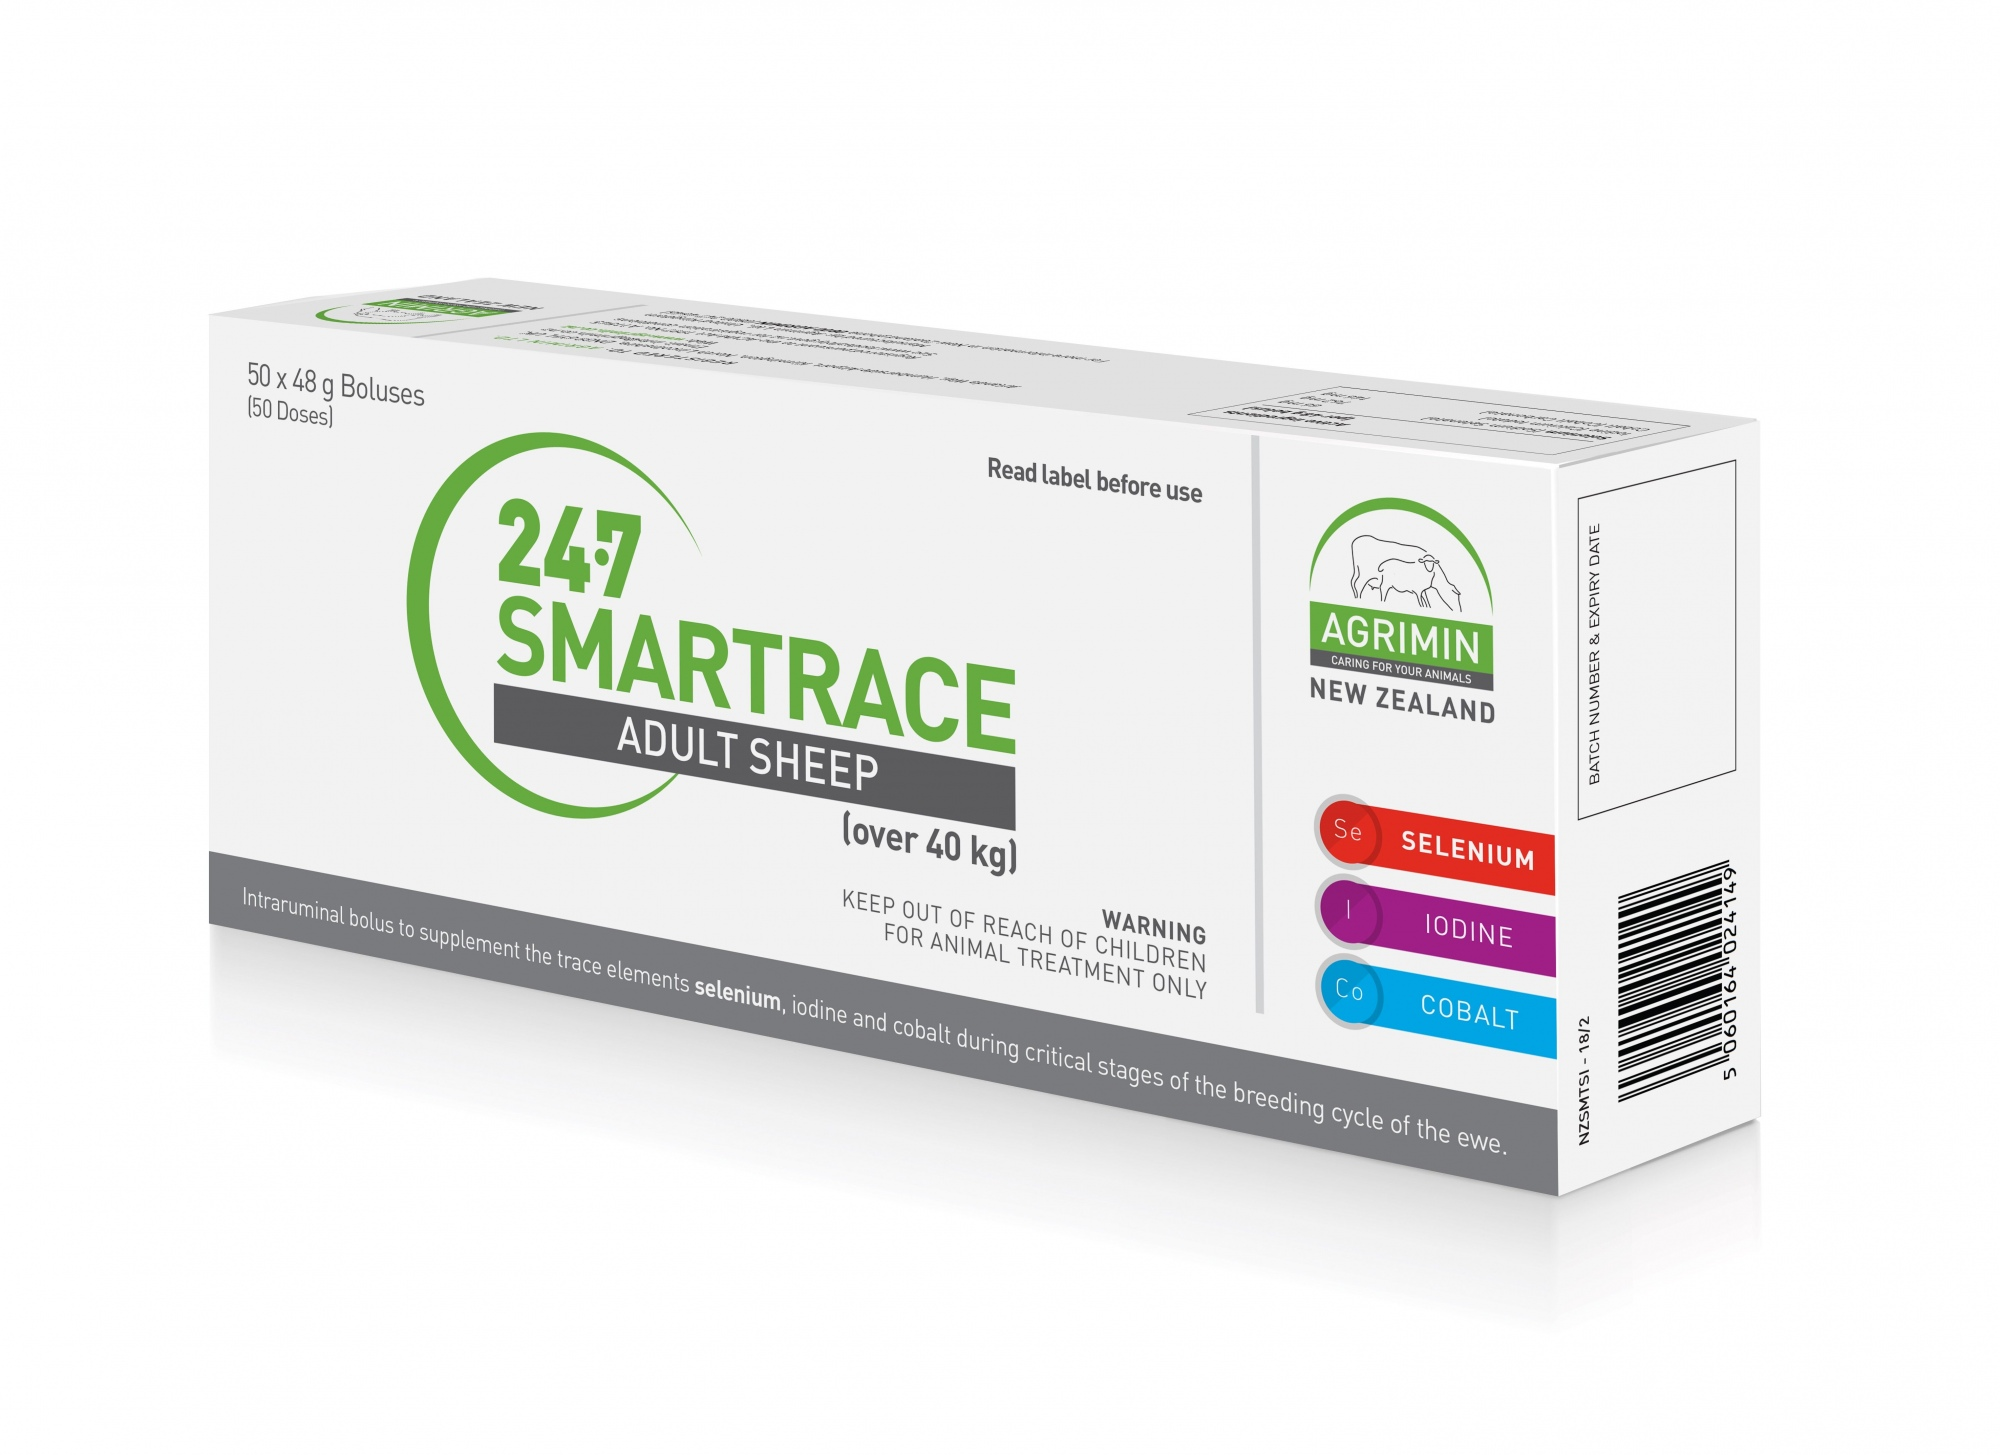 Smartrace Adult Sheep